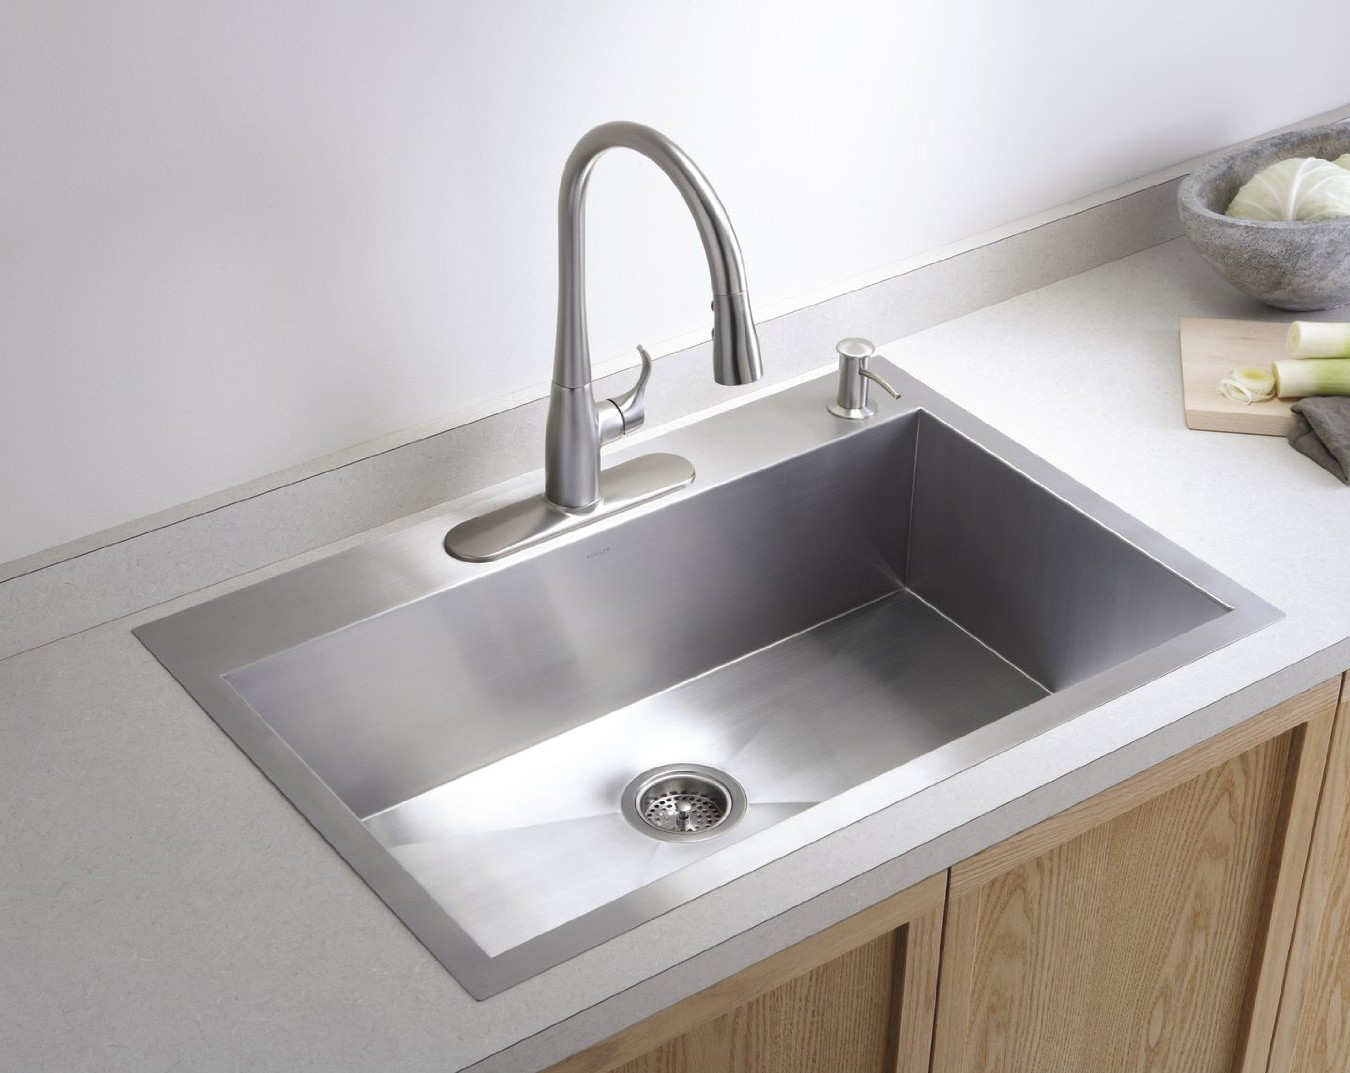 Amazing The Minimalist Vault Drop In Sink Has Replaced Two Highly Styled Stainless  Predecessors.